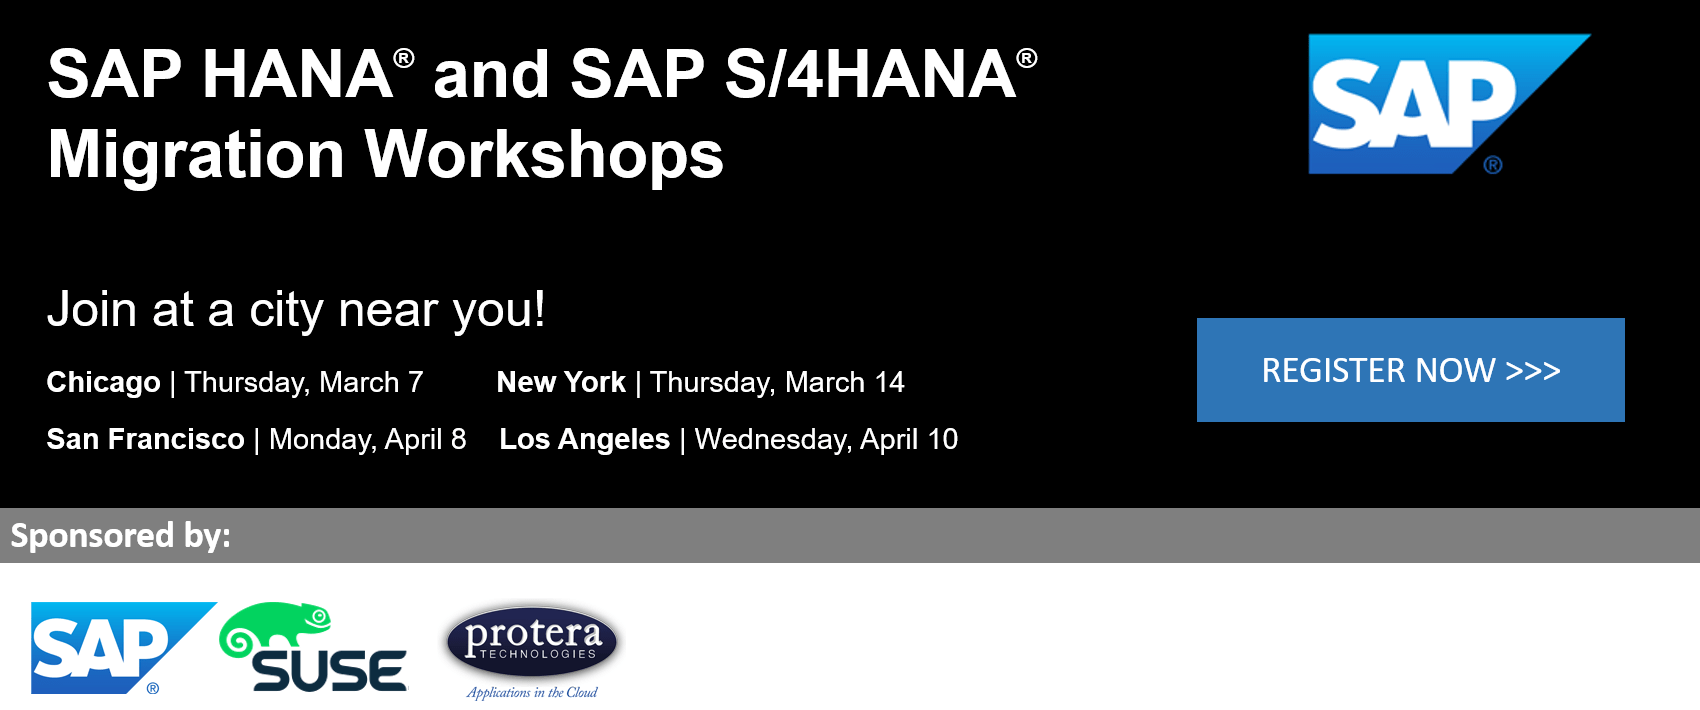 SAP HANA Migration Workshops and SAP S/4HANA Migration Workshops 2019